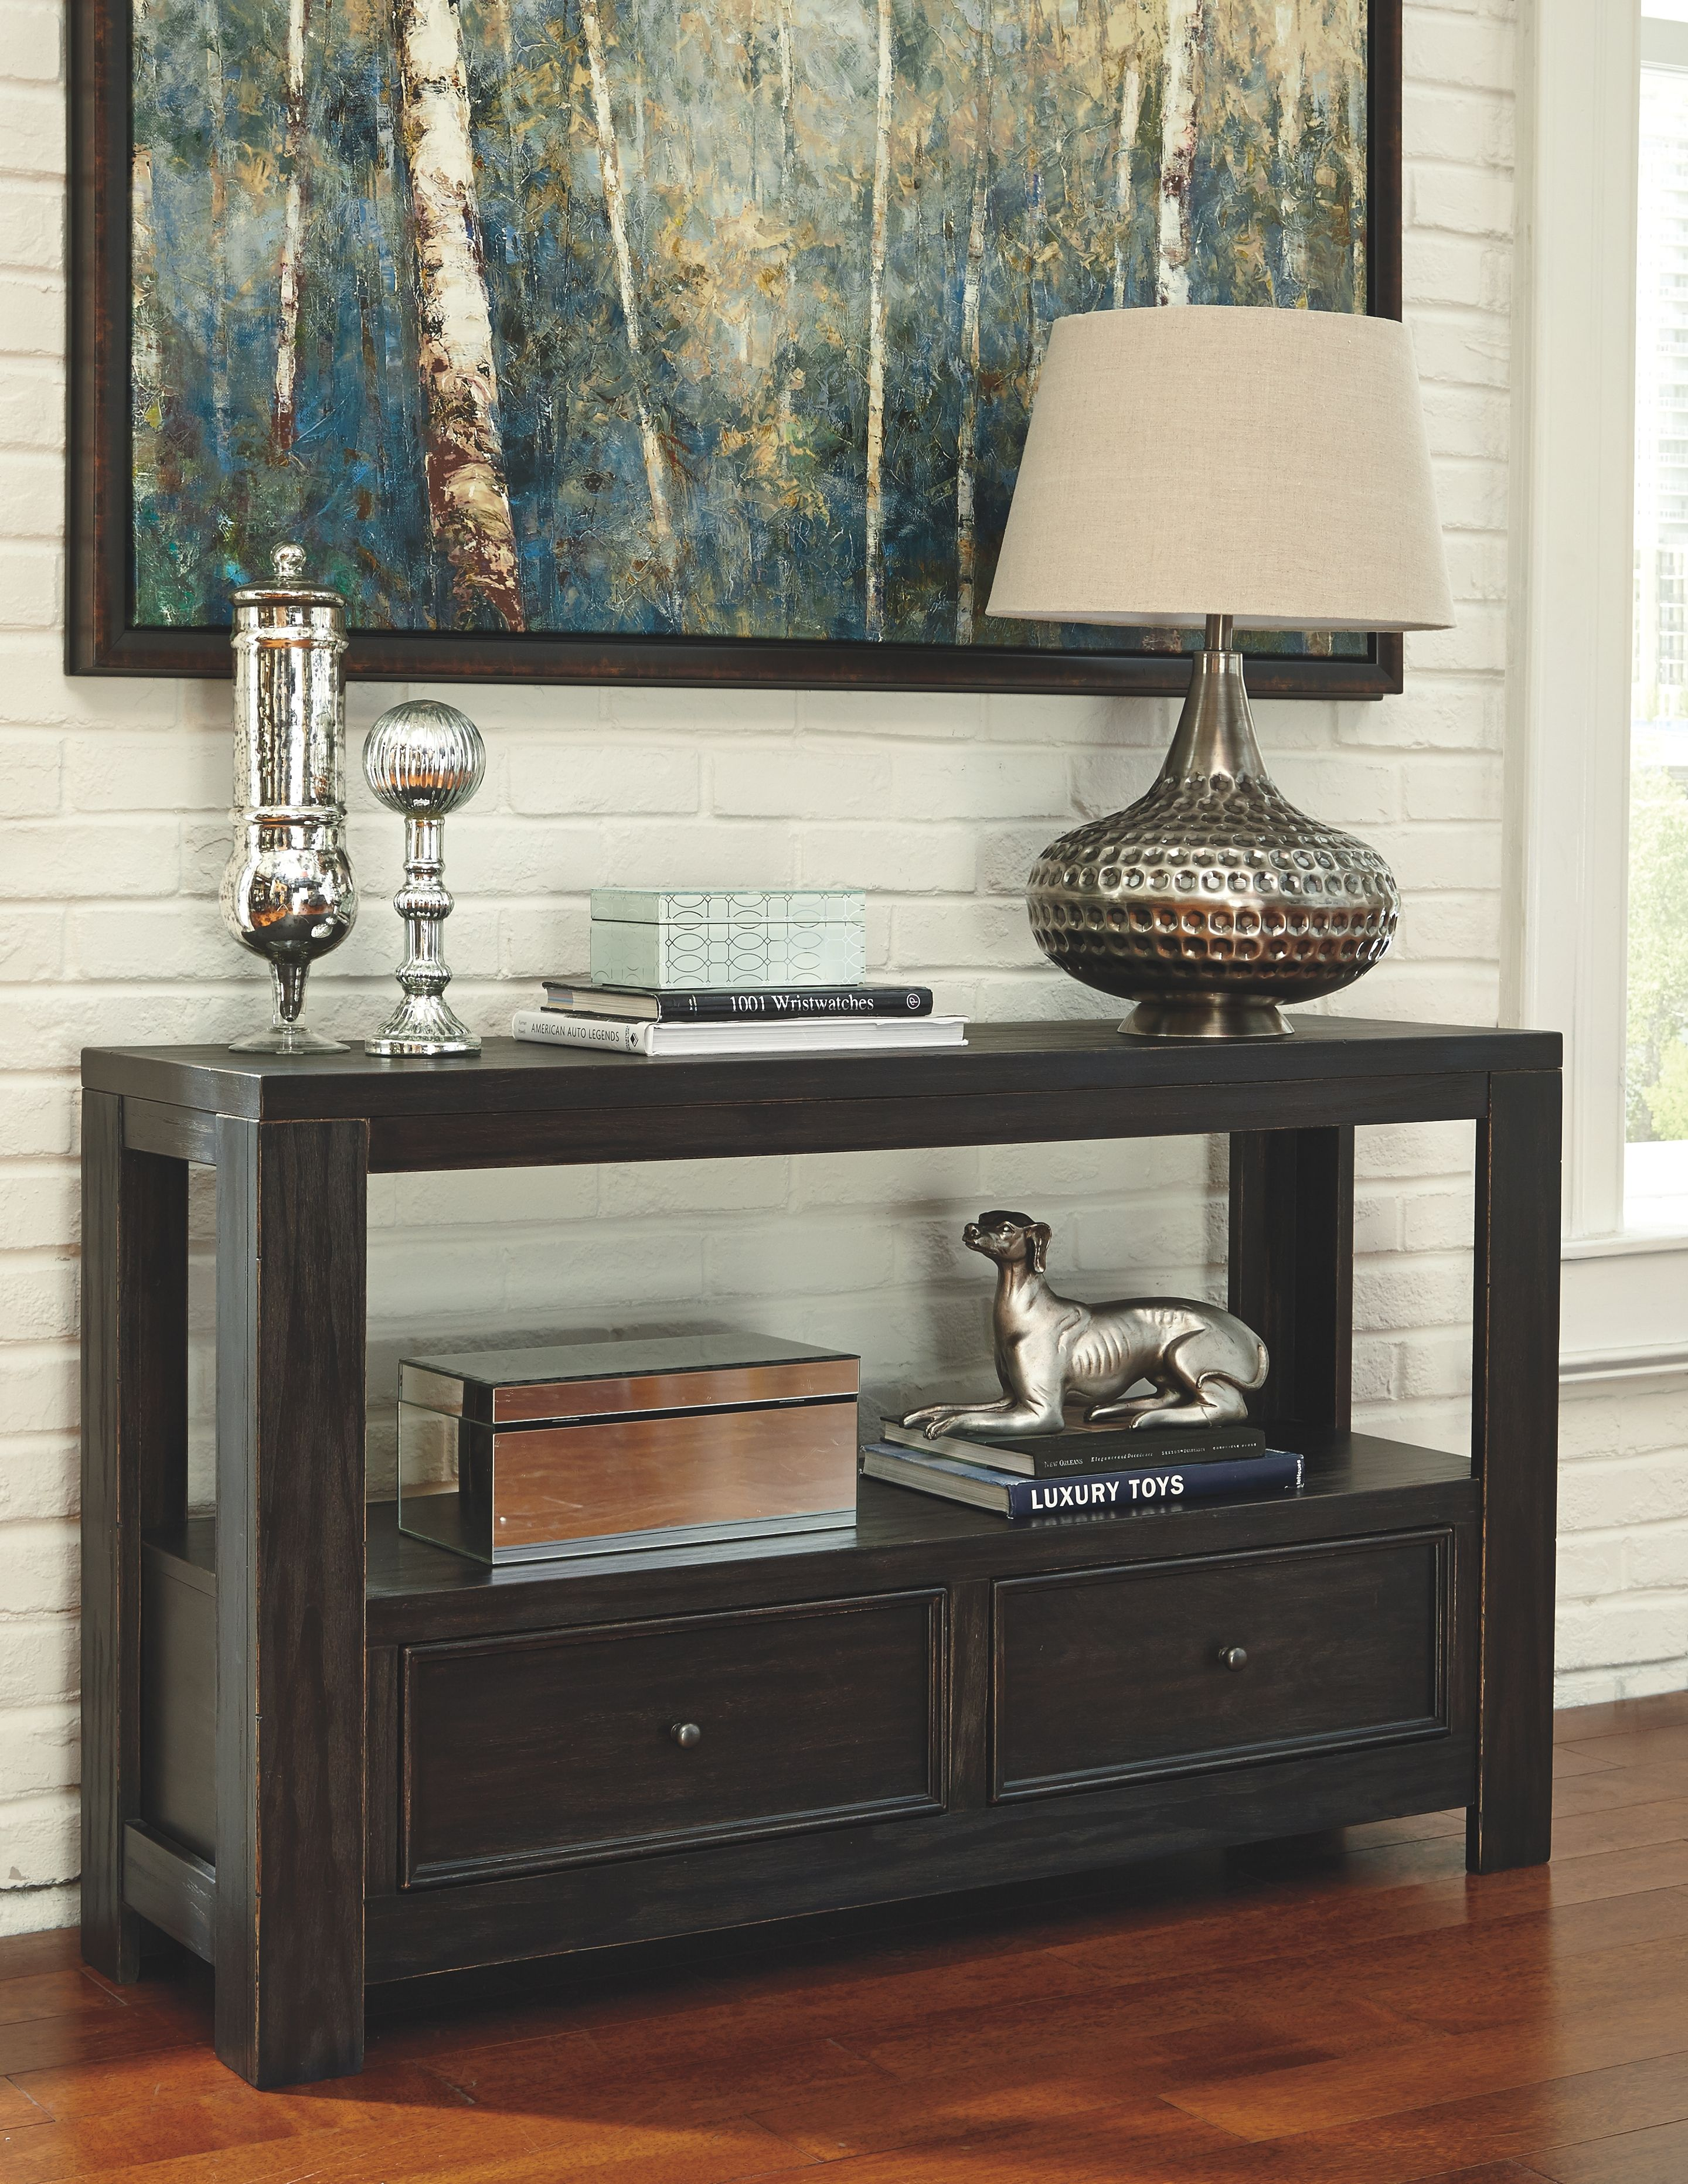 Gavelston Sofa Console Table Rubbed Black In 2020 Black Sofa Table Sofa Table Ashley Furniture Sofas